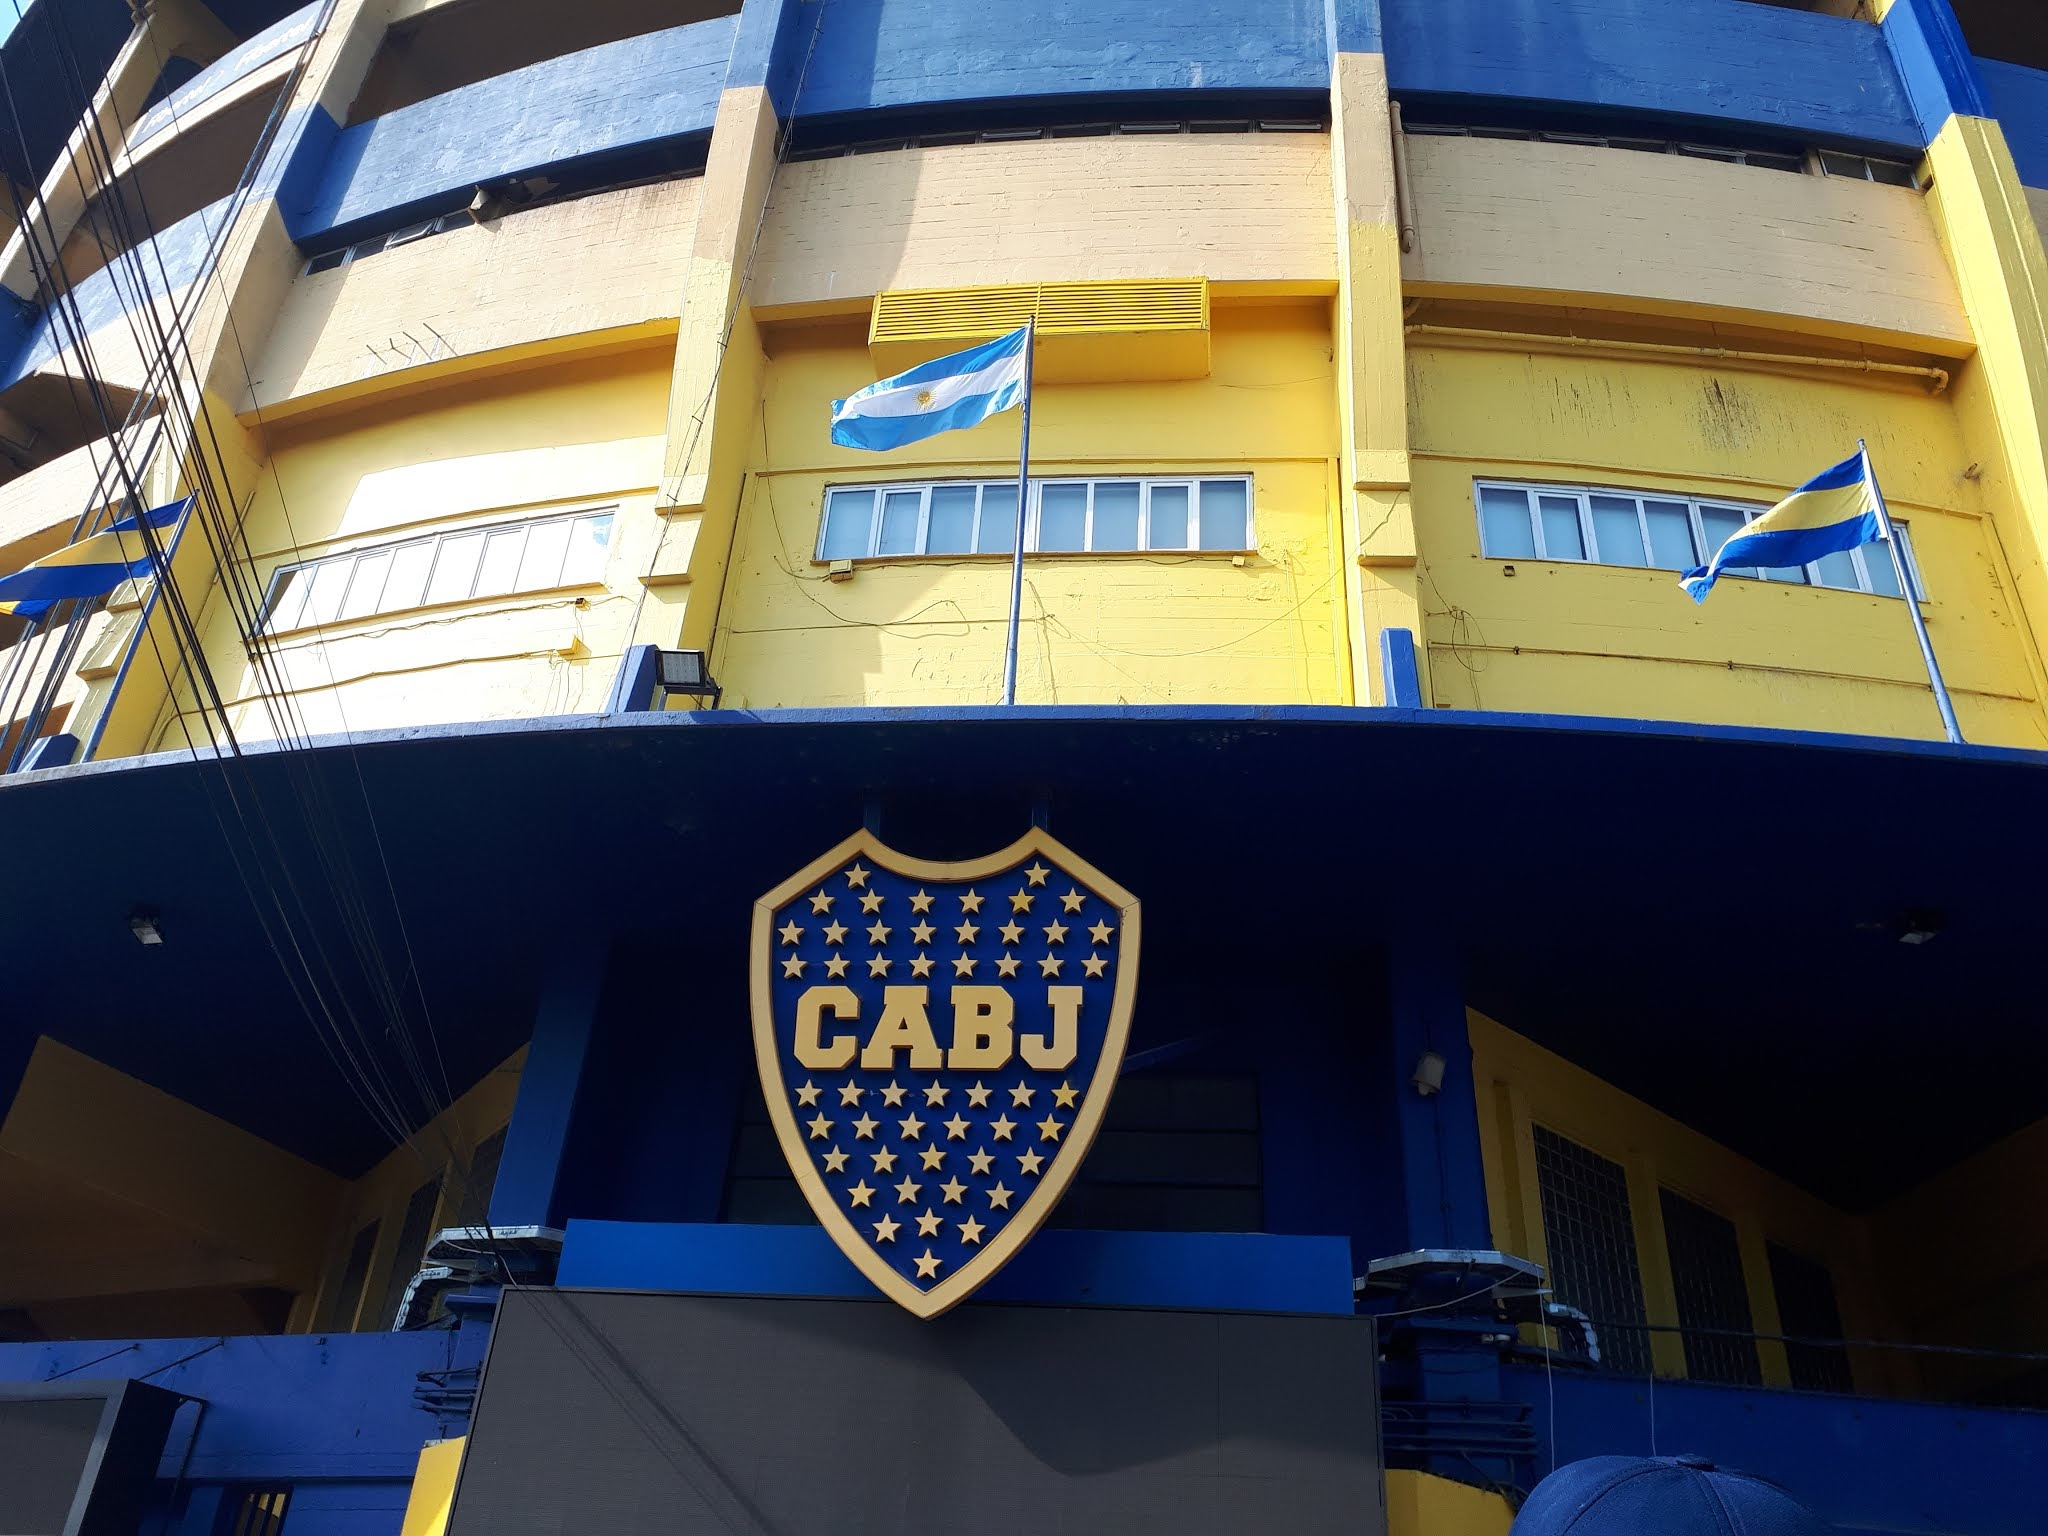 La Bombonera estádio sede do Boca Juniors